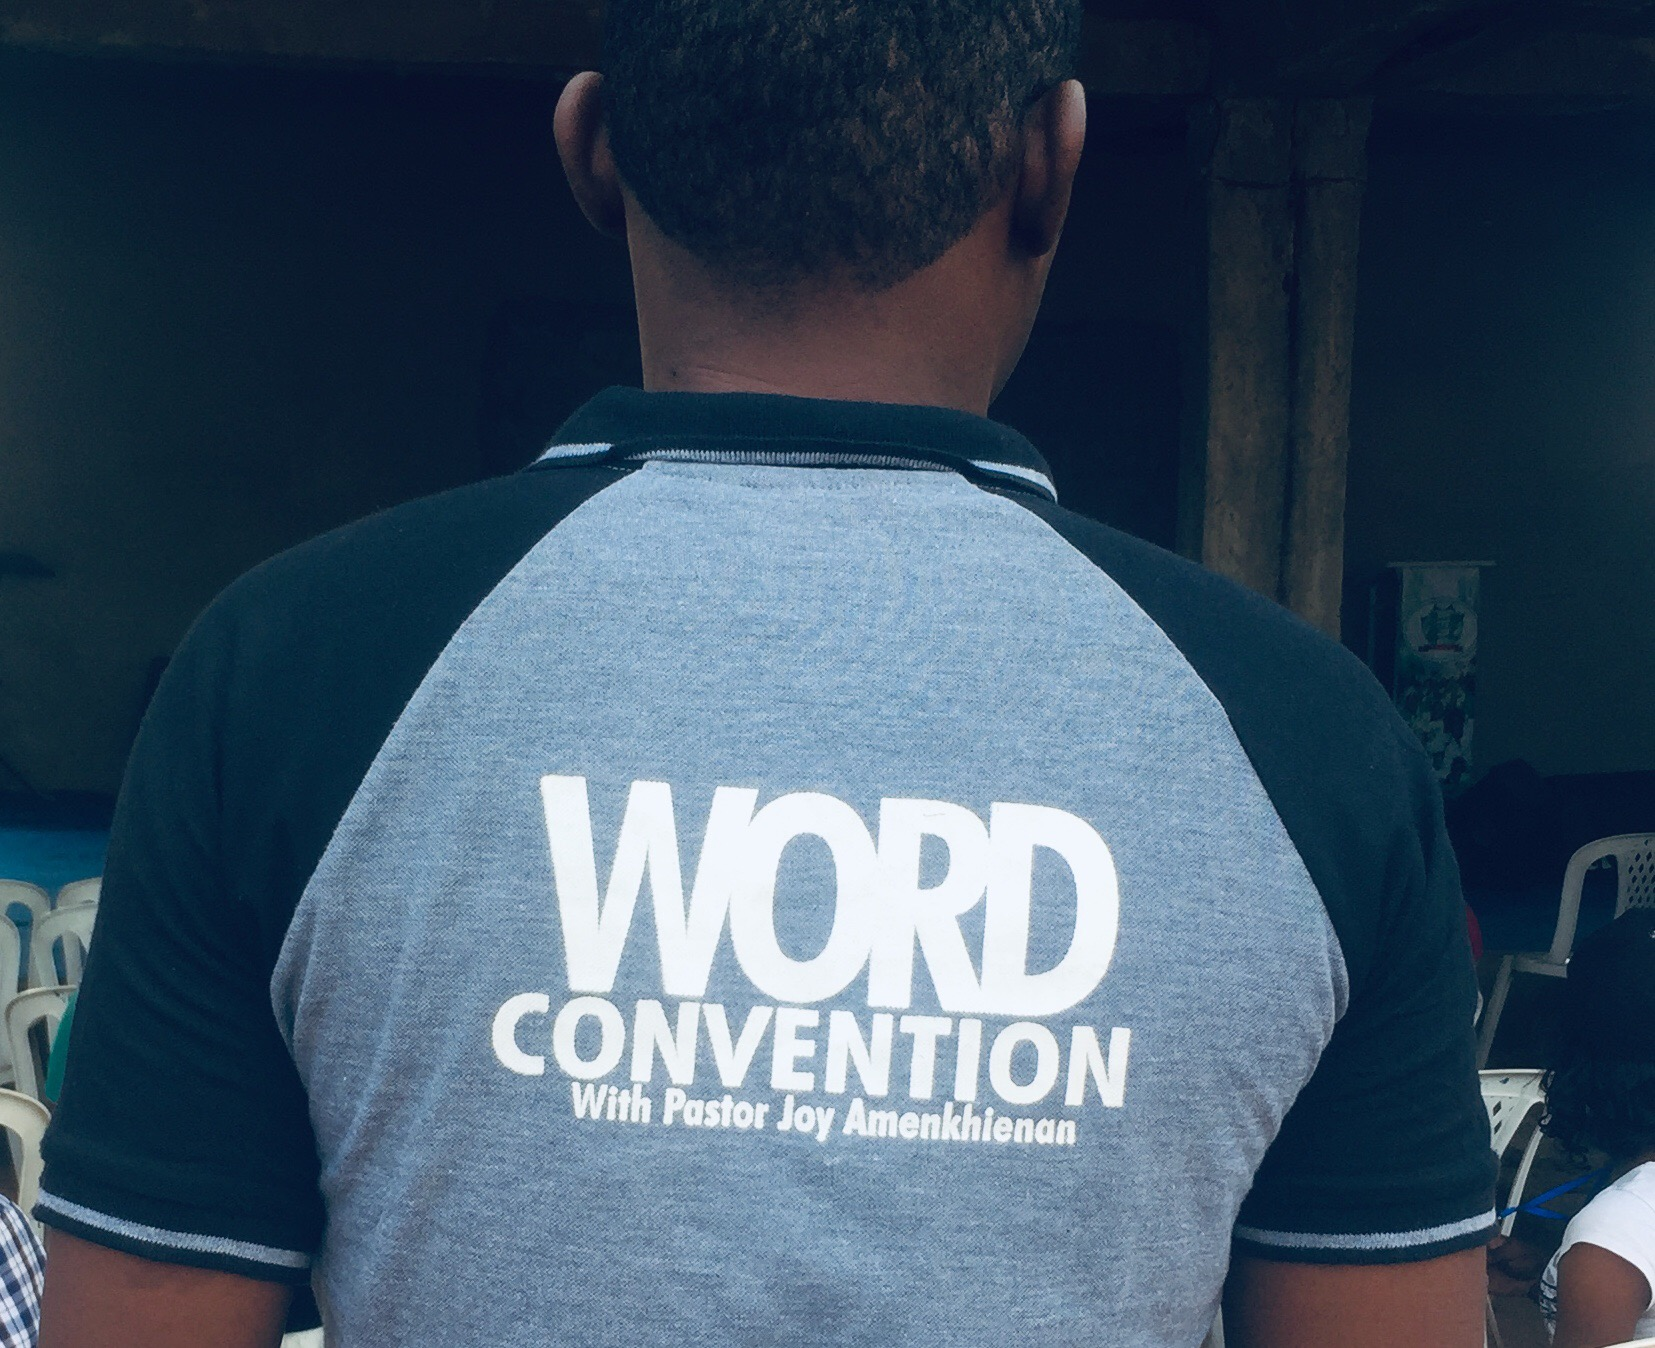 #wordconventionnevz1 #pastorjoyinyola